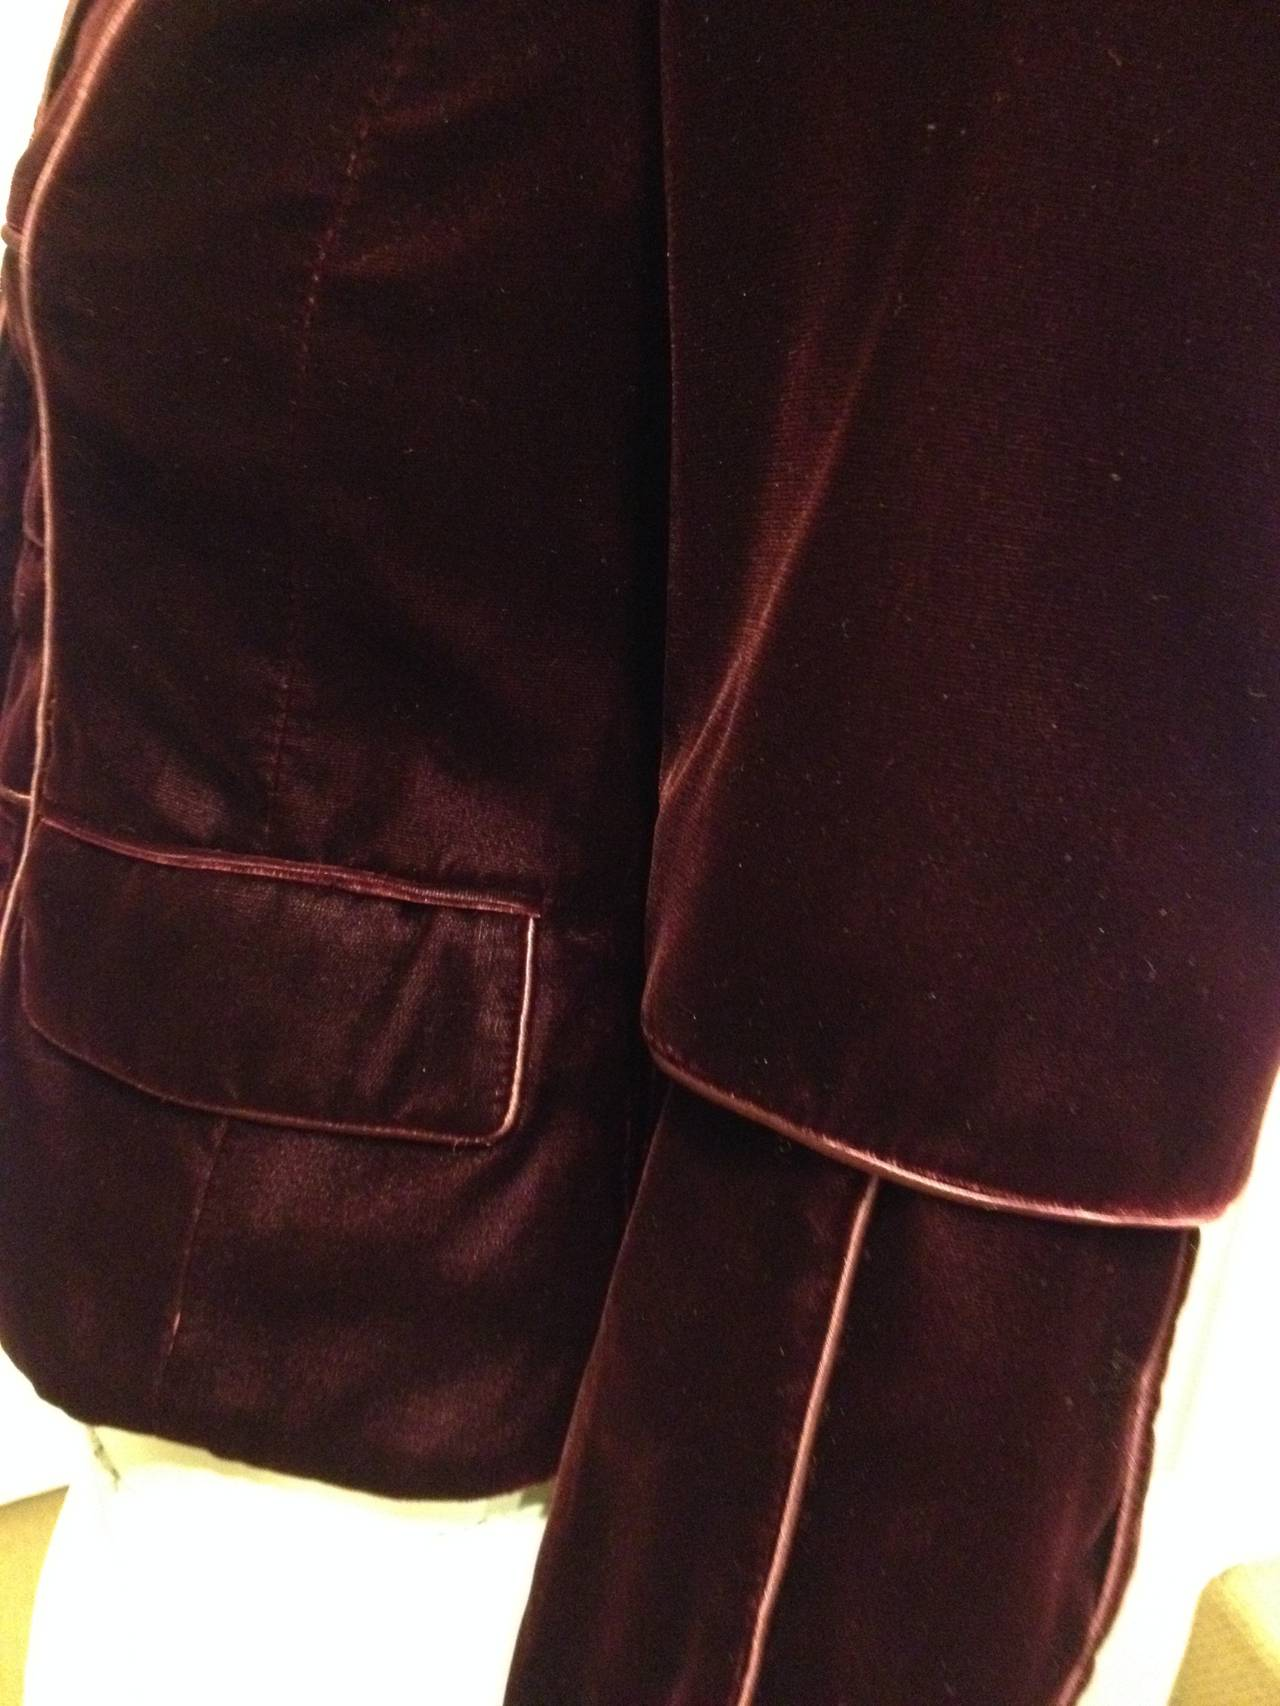 Yves Saint Laurent Wine Velvet Jacket In Excellent Condition For Sale In San Francisco, CA